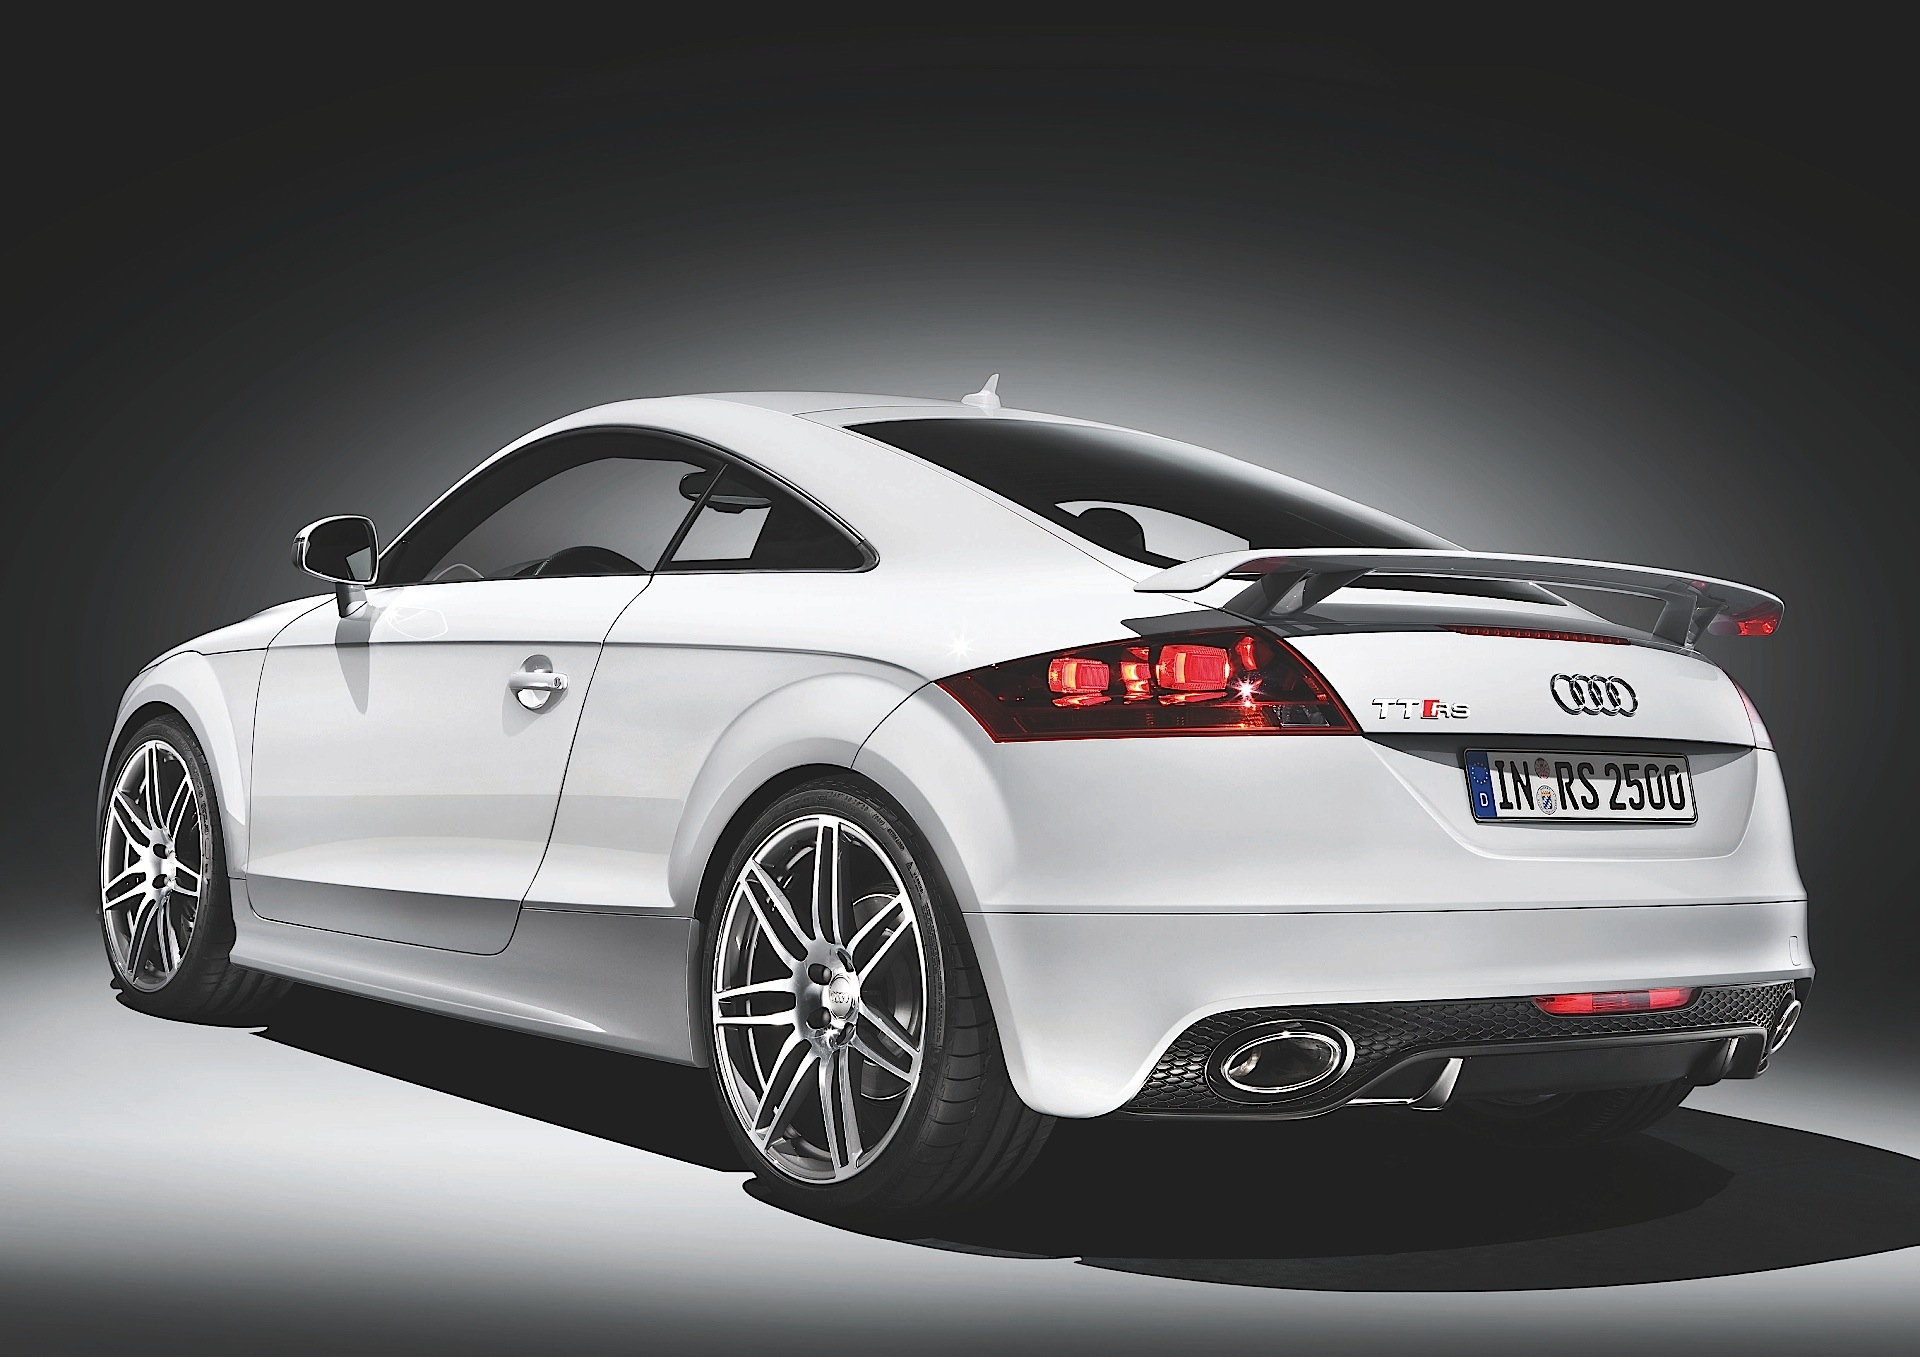 audi tt rs coupe specs photos 2009 2010 2011 2012 2013 2014 autoevolution. Black Bedroom Furniture Sets. Home Design Ideas